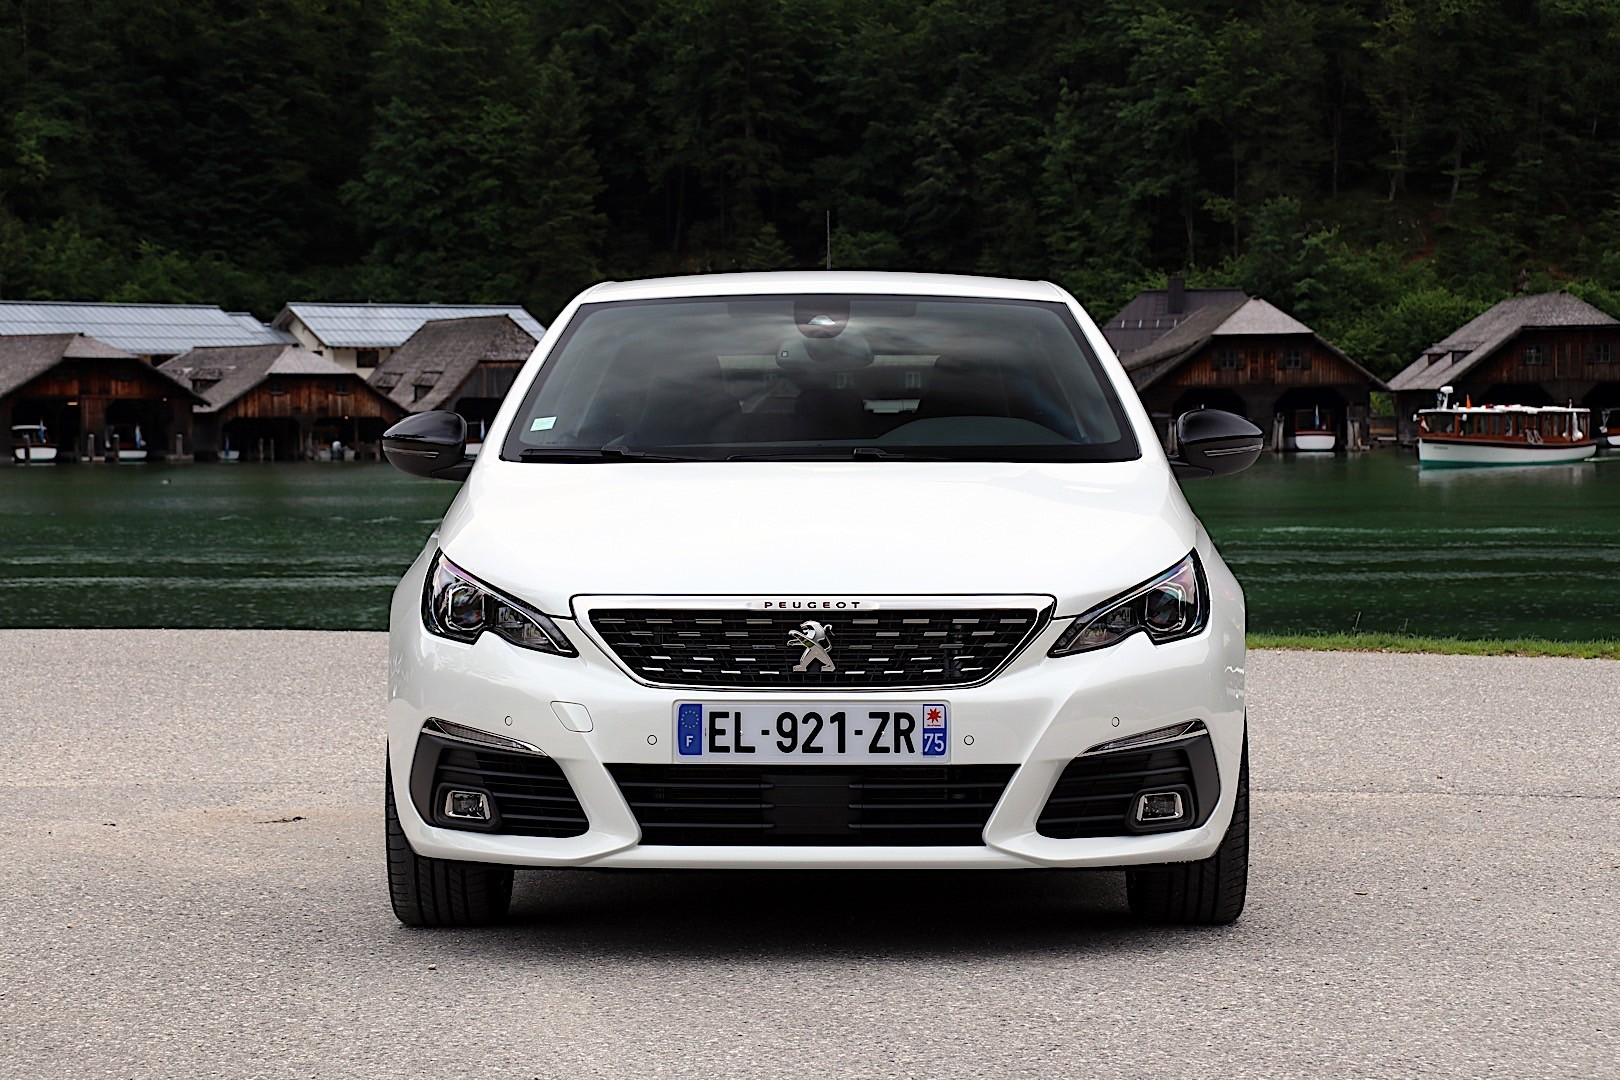 peugeot 308 5 doors specs 2017 2018 autoevolution. Black Bedroom Furniture Sets. Home Design Ideas